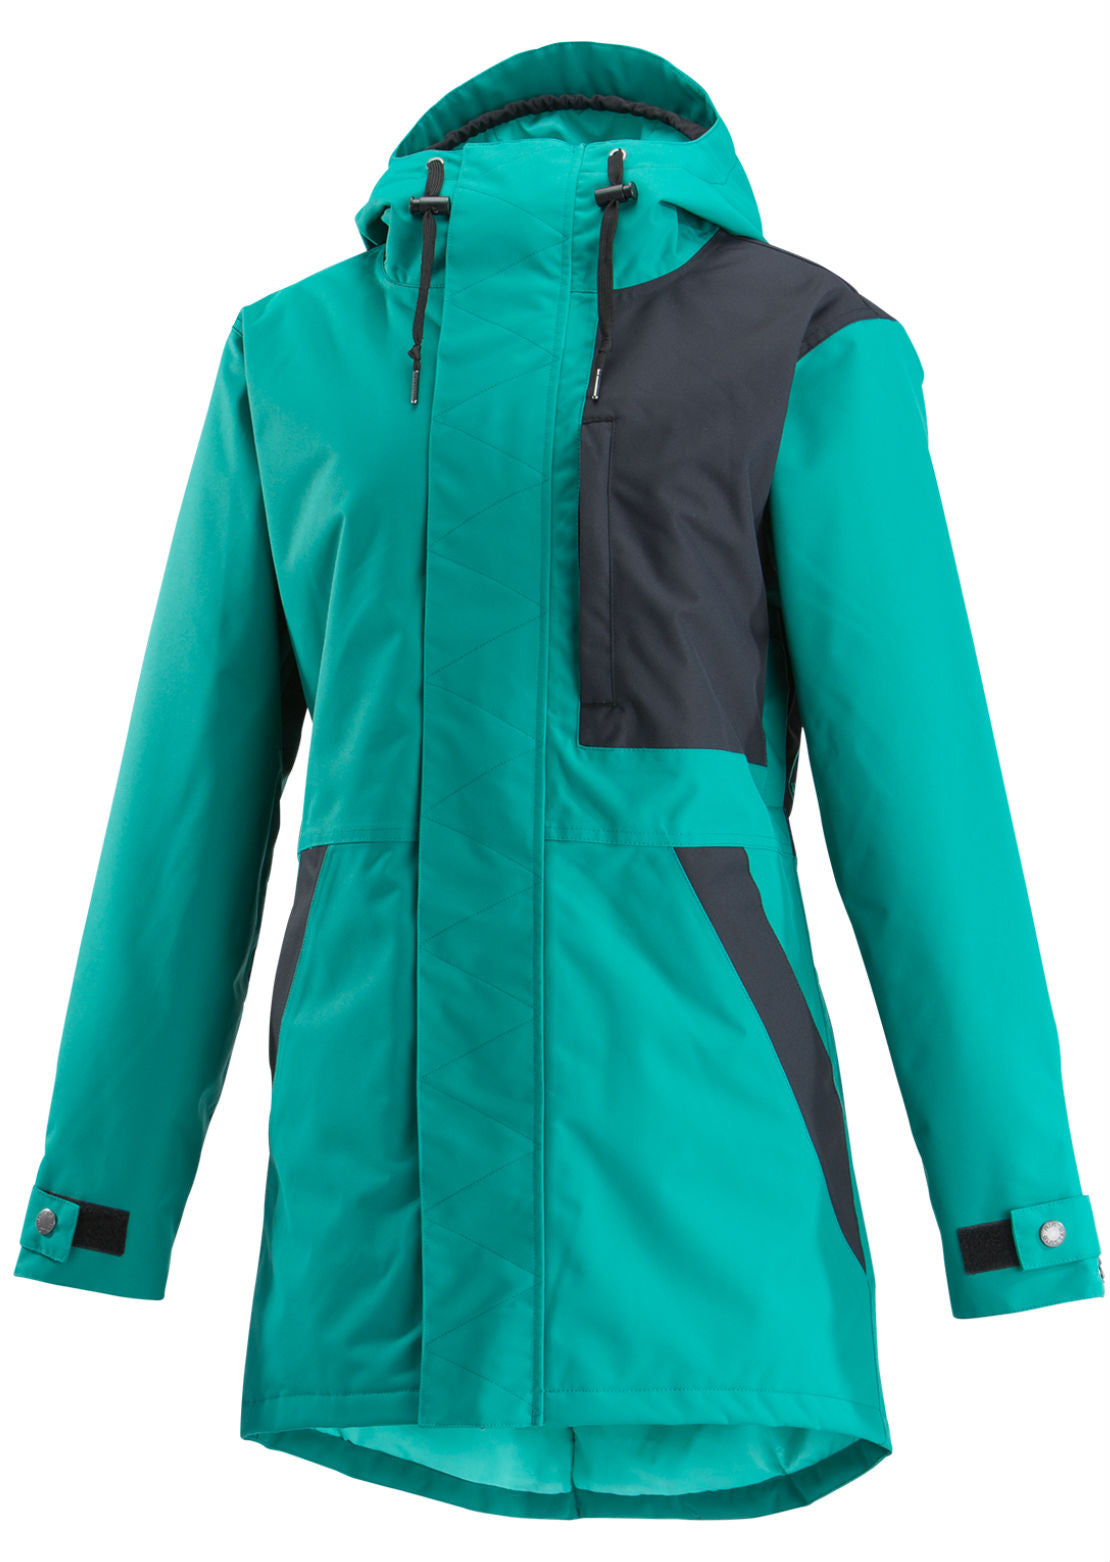 Airblaster x GNU Women's Lady Storm Cloak Jacket